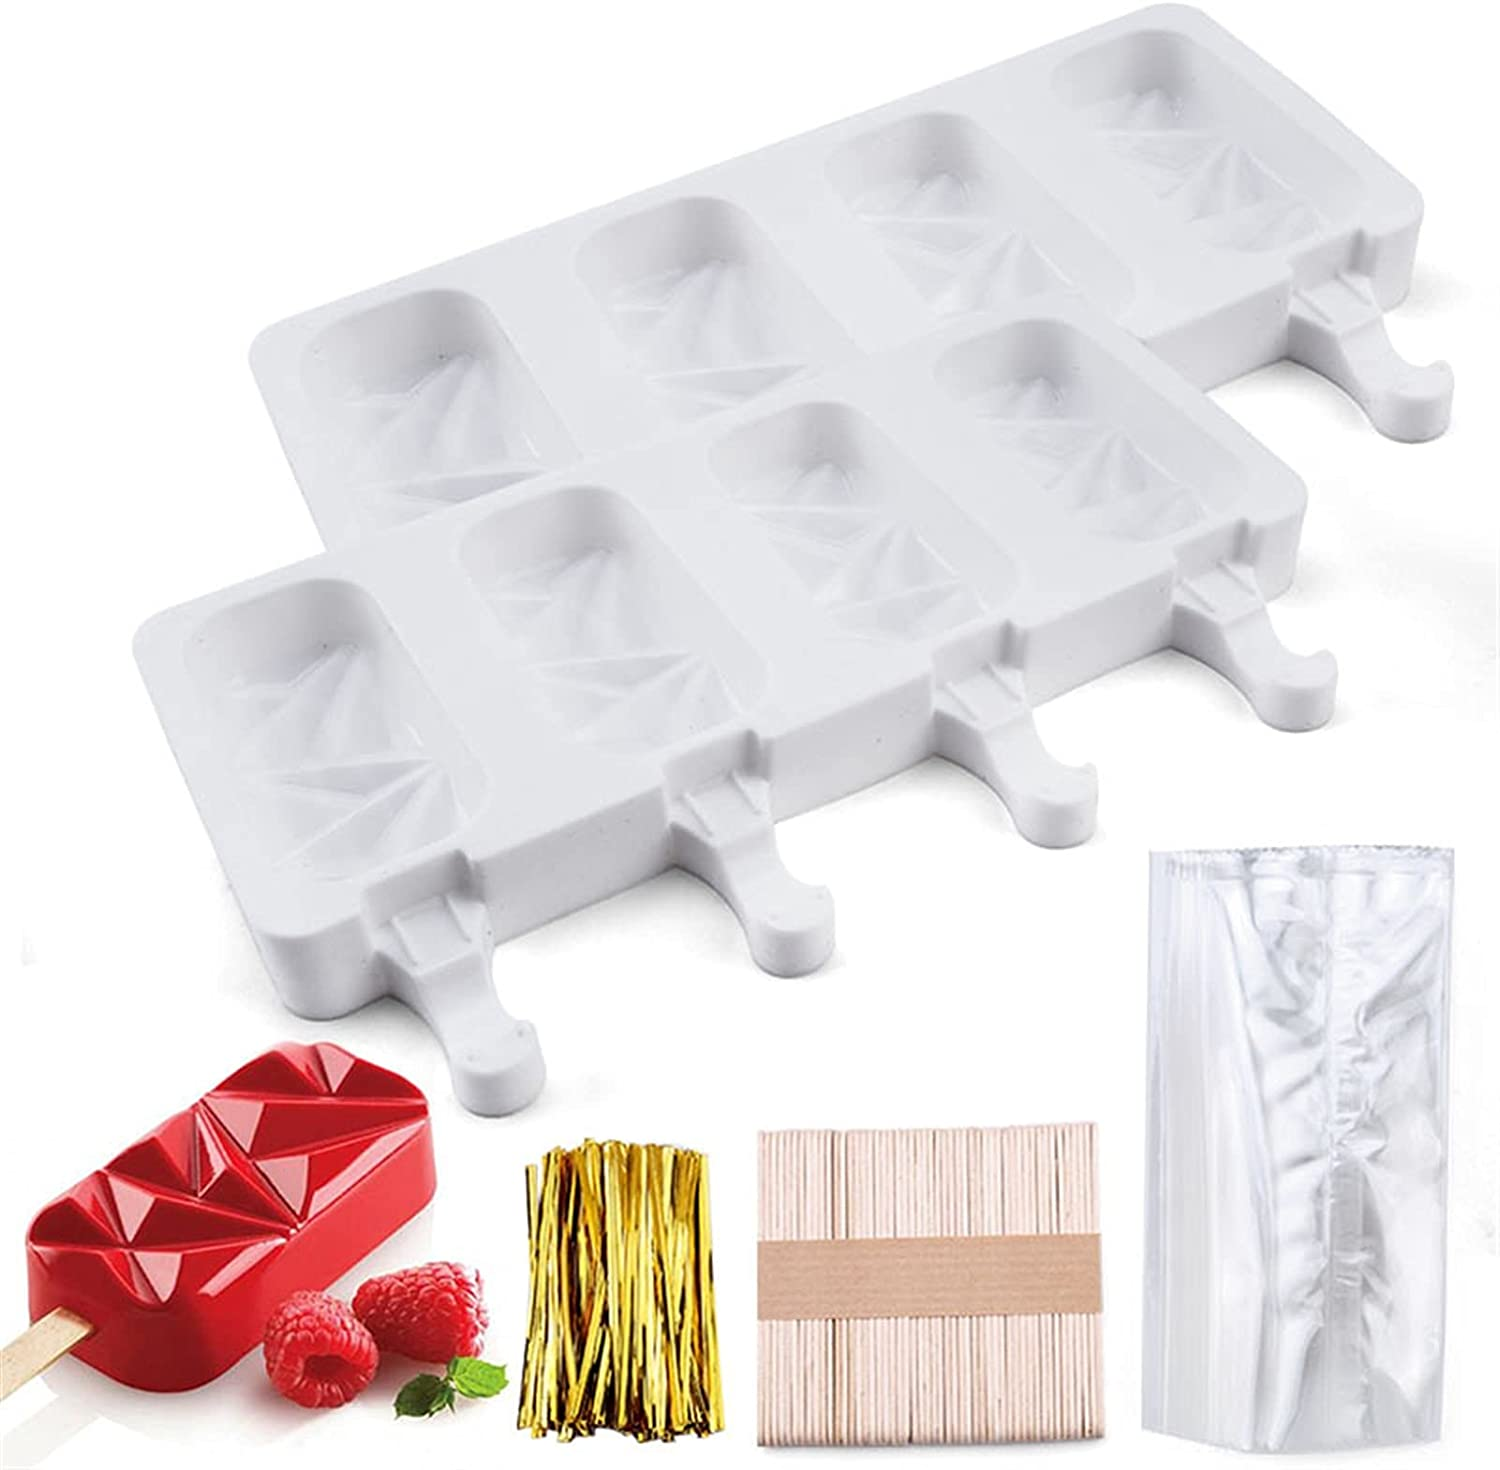 Durable Charlotte Ranking TOP7 Mall and precise Ice Cream Popsicle M Silicone Cakesicle Mold